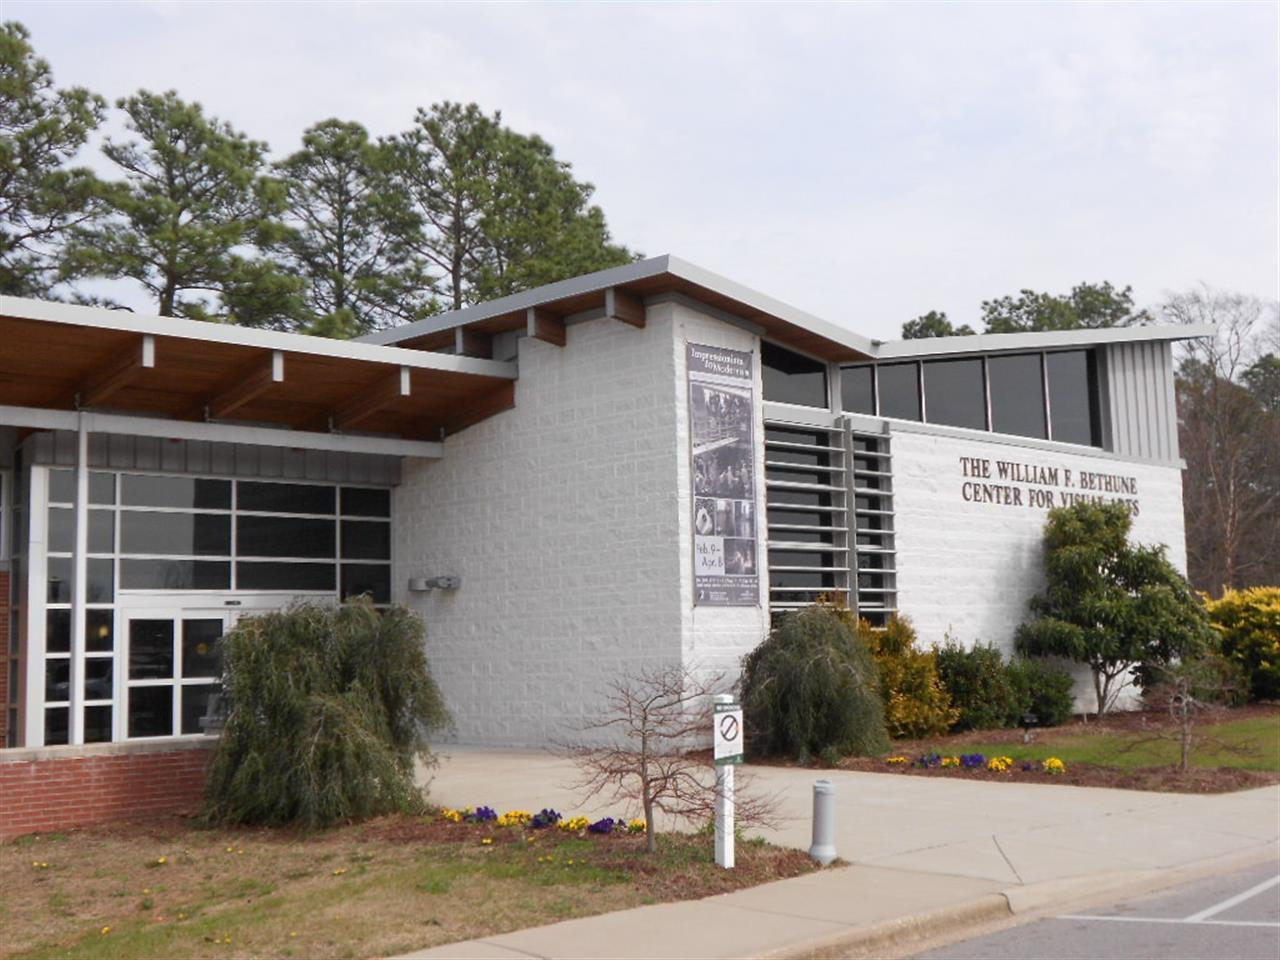 The William Bethune Center for the Arts at Methodist University in Fayetteville, North Carolina